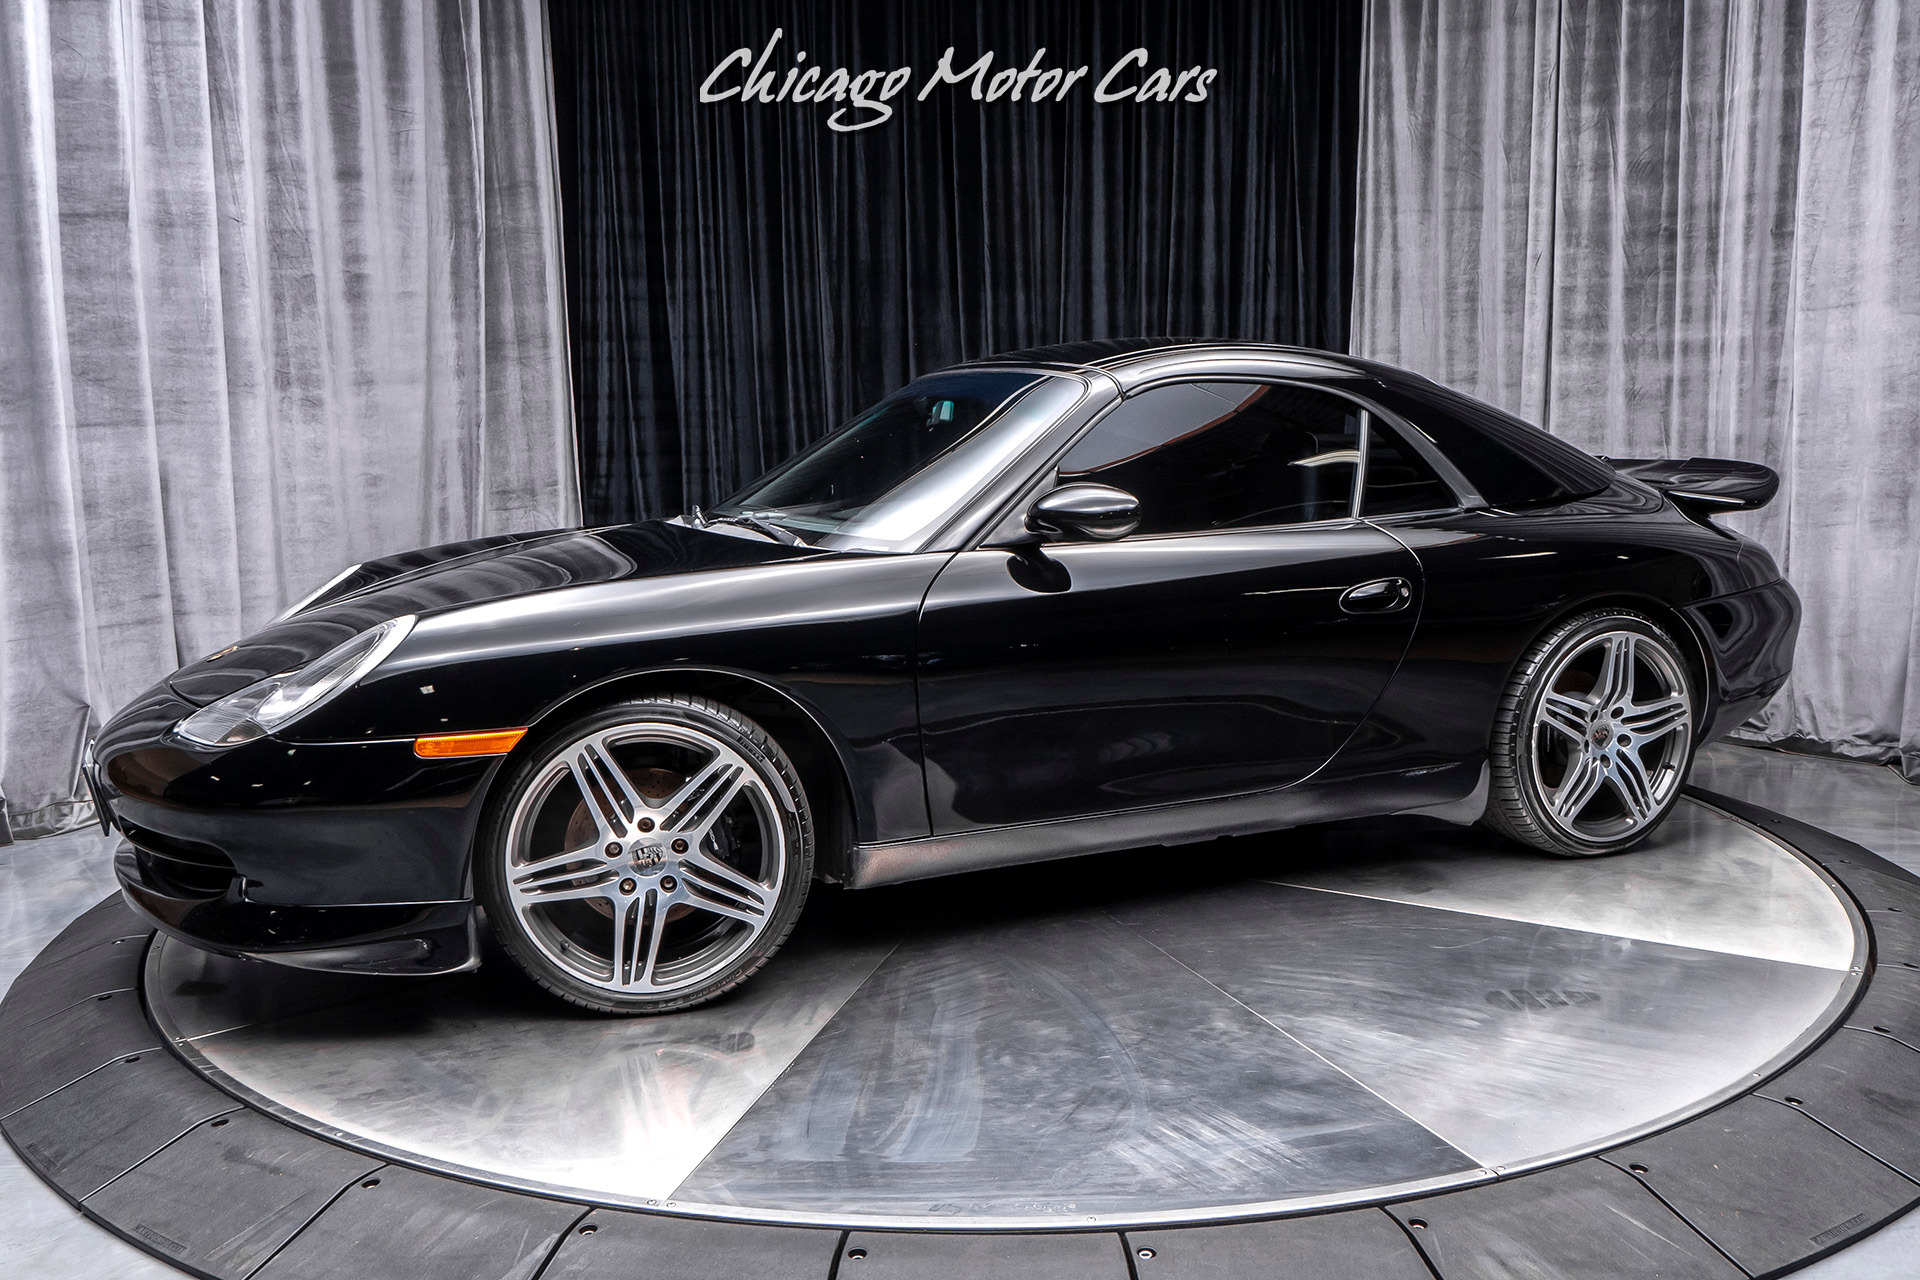 Used 1999 Porsche 911 Carrera Cabriolet Convertible Thousands In Upgrades For Sale Special Pricing Chicago Motor Cars Stock 16066a